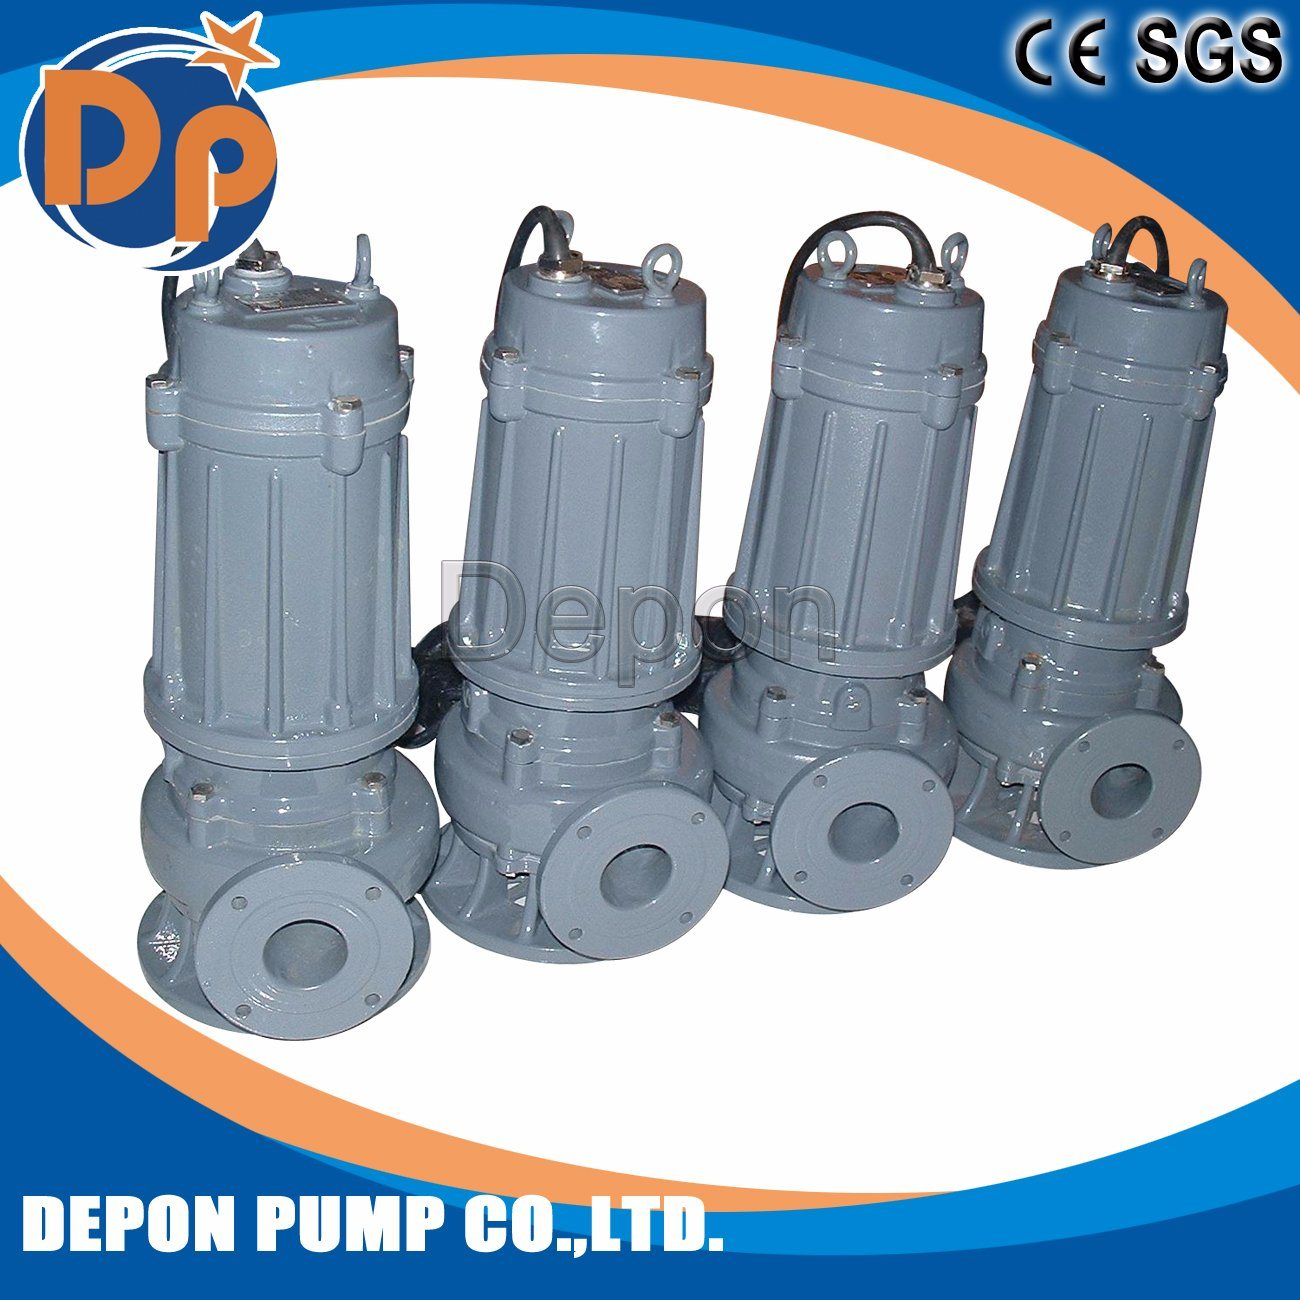 Top Sale High Quality Portable Submersible Sewage Pump Price List pictures & photos